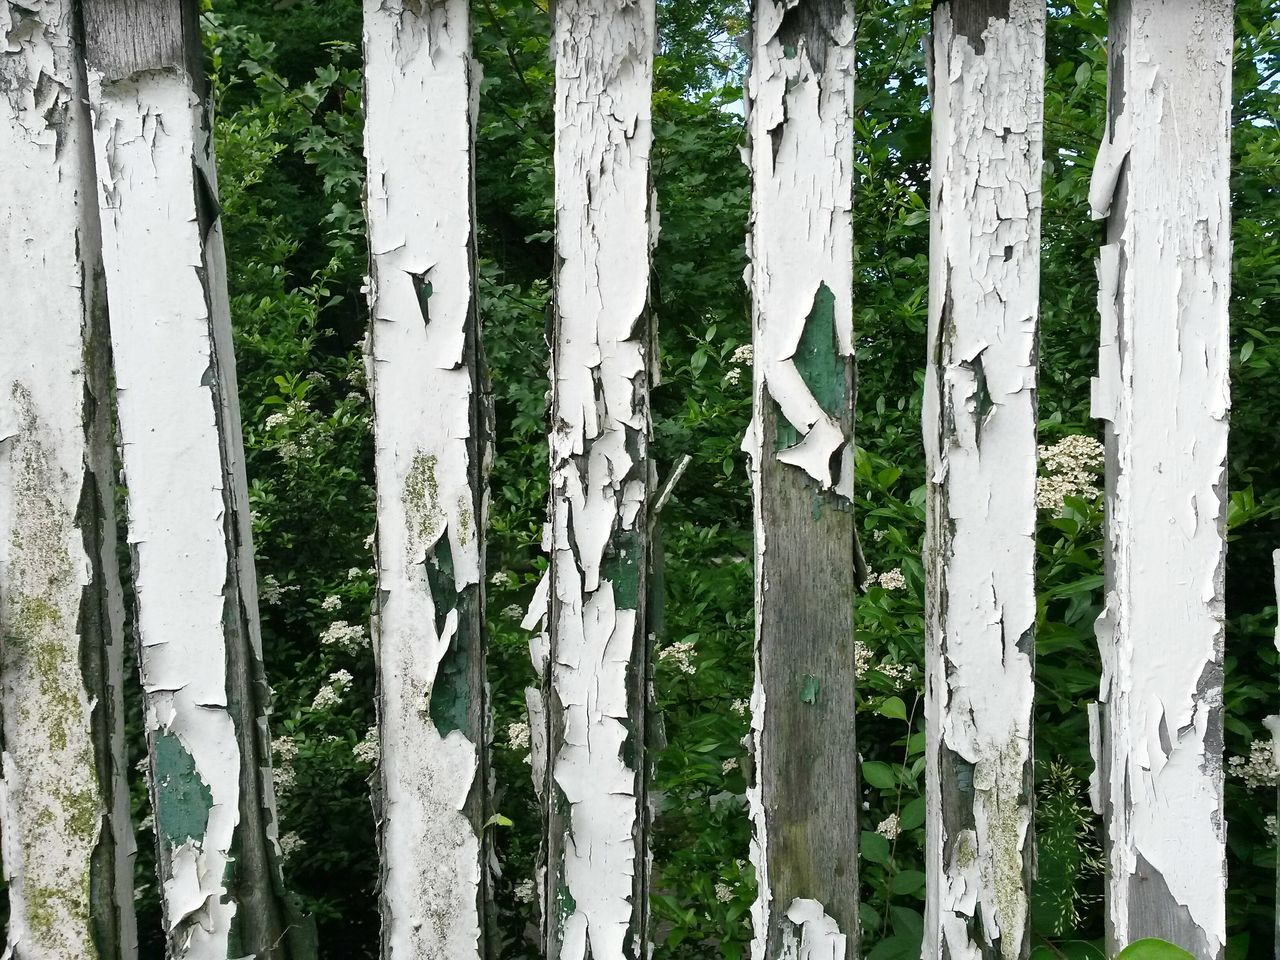 Zaunfeld Fence Field Zaun Day White Color Wood - Material Outdoors Full Frame No People Textured  Tree Trunk Backgrounds Close-up Nature Fencepost Fences Fence Old Fence Weathered Fence Photography Fence Art Fence Post Fenceporn Fenced In Fenceline Fence Line